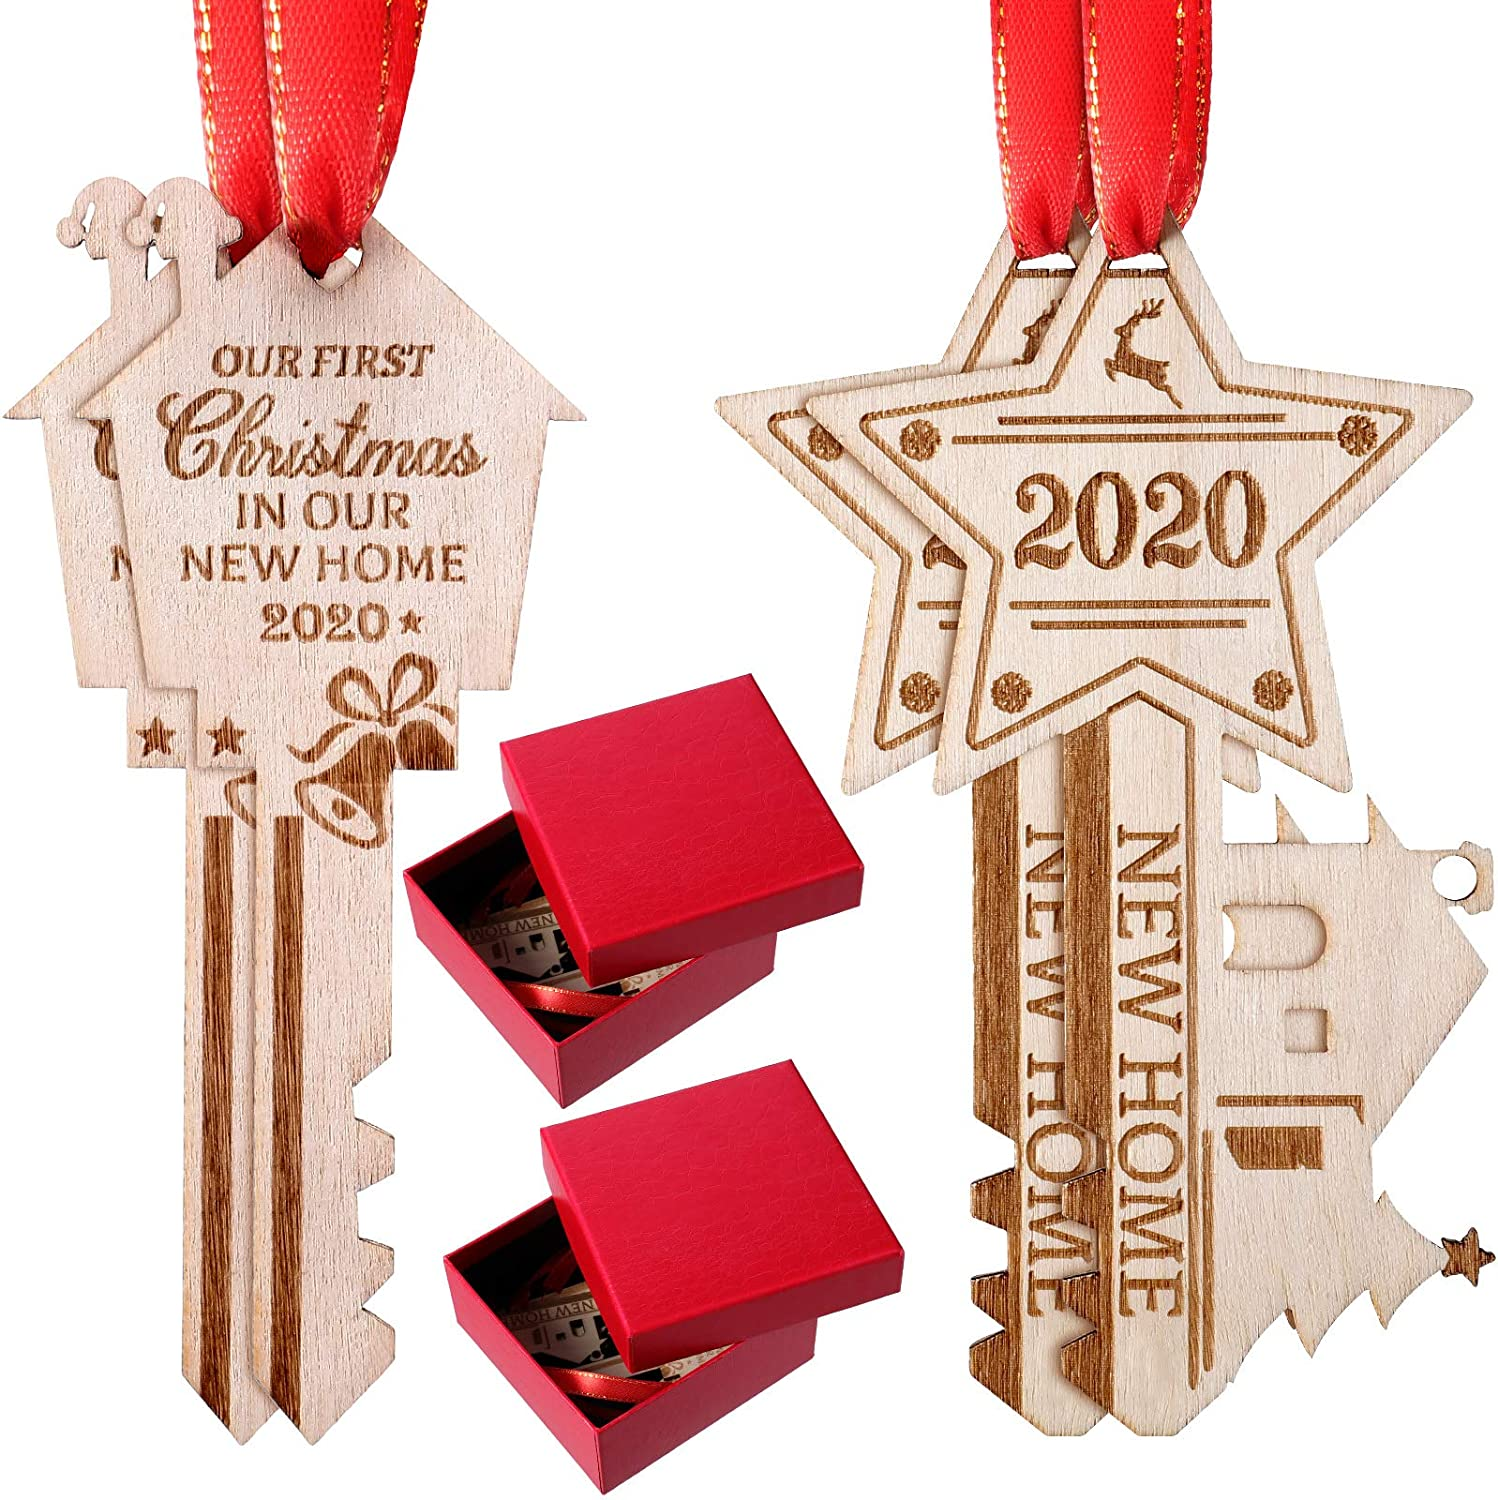 4 Pieces 2020 Christmas Ornament Our First Christmas in Our New Home Wood Key Hanging Ornament Christmas Tree Hanging Decoration with 2 Pieces Boxes for Christmas New Year Housewarming Decor, 2 Style